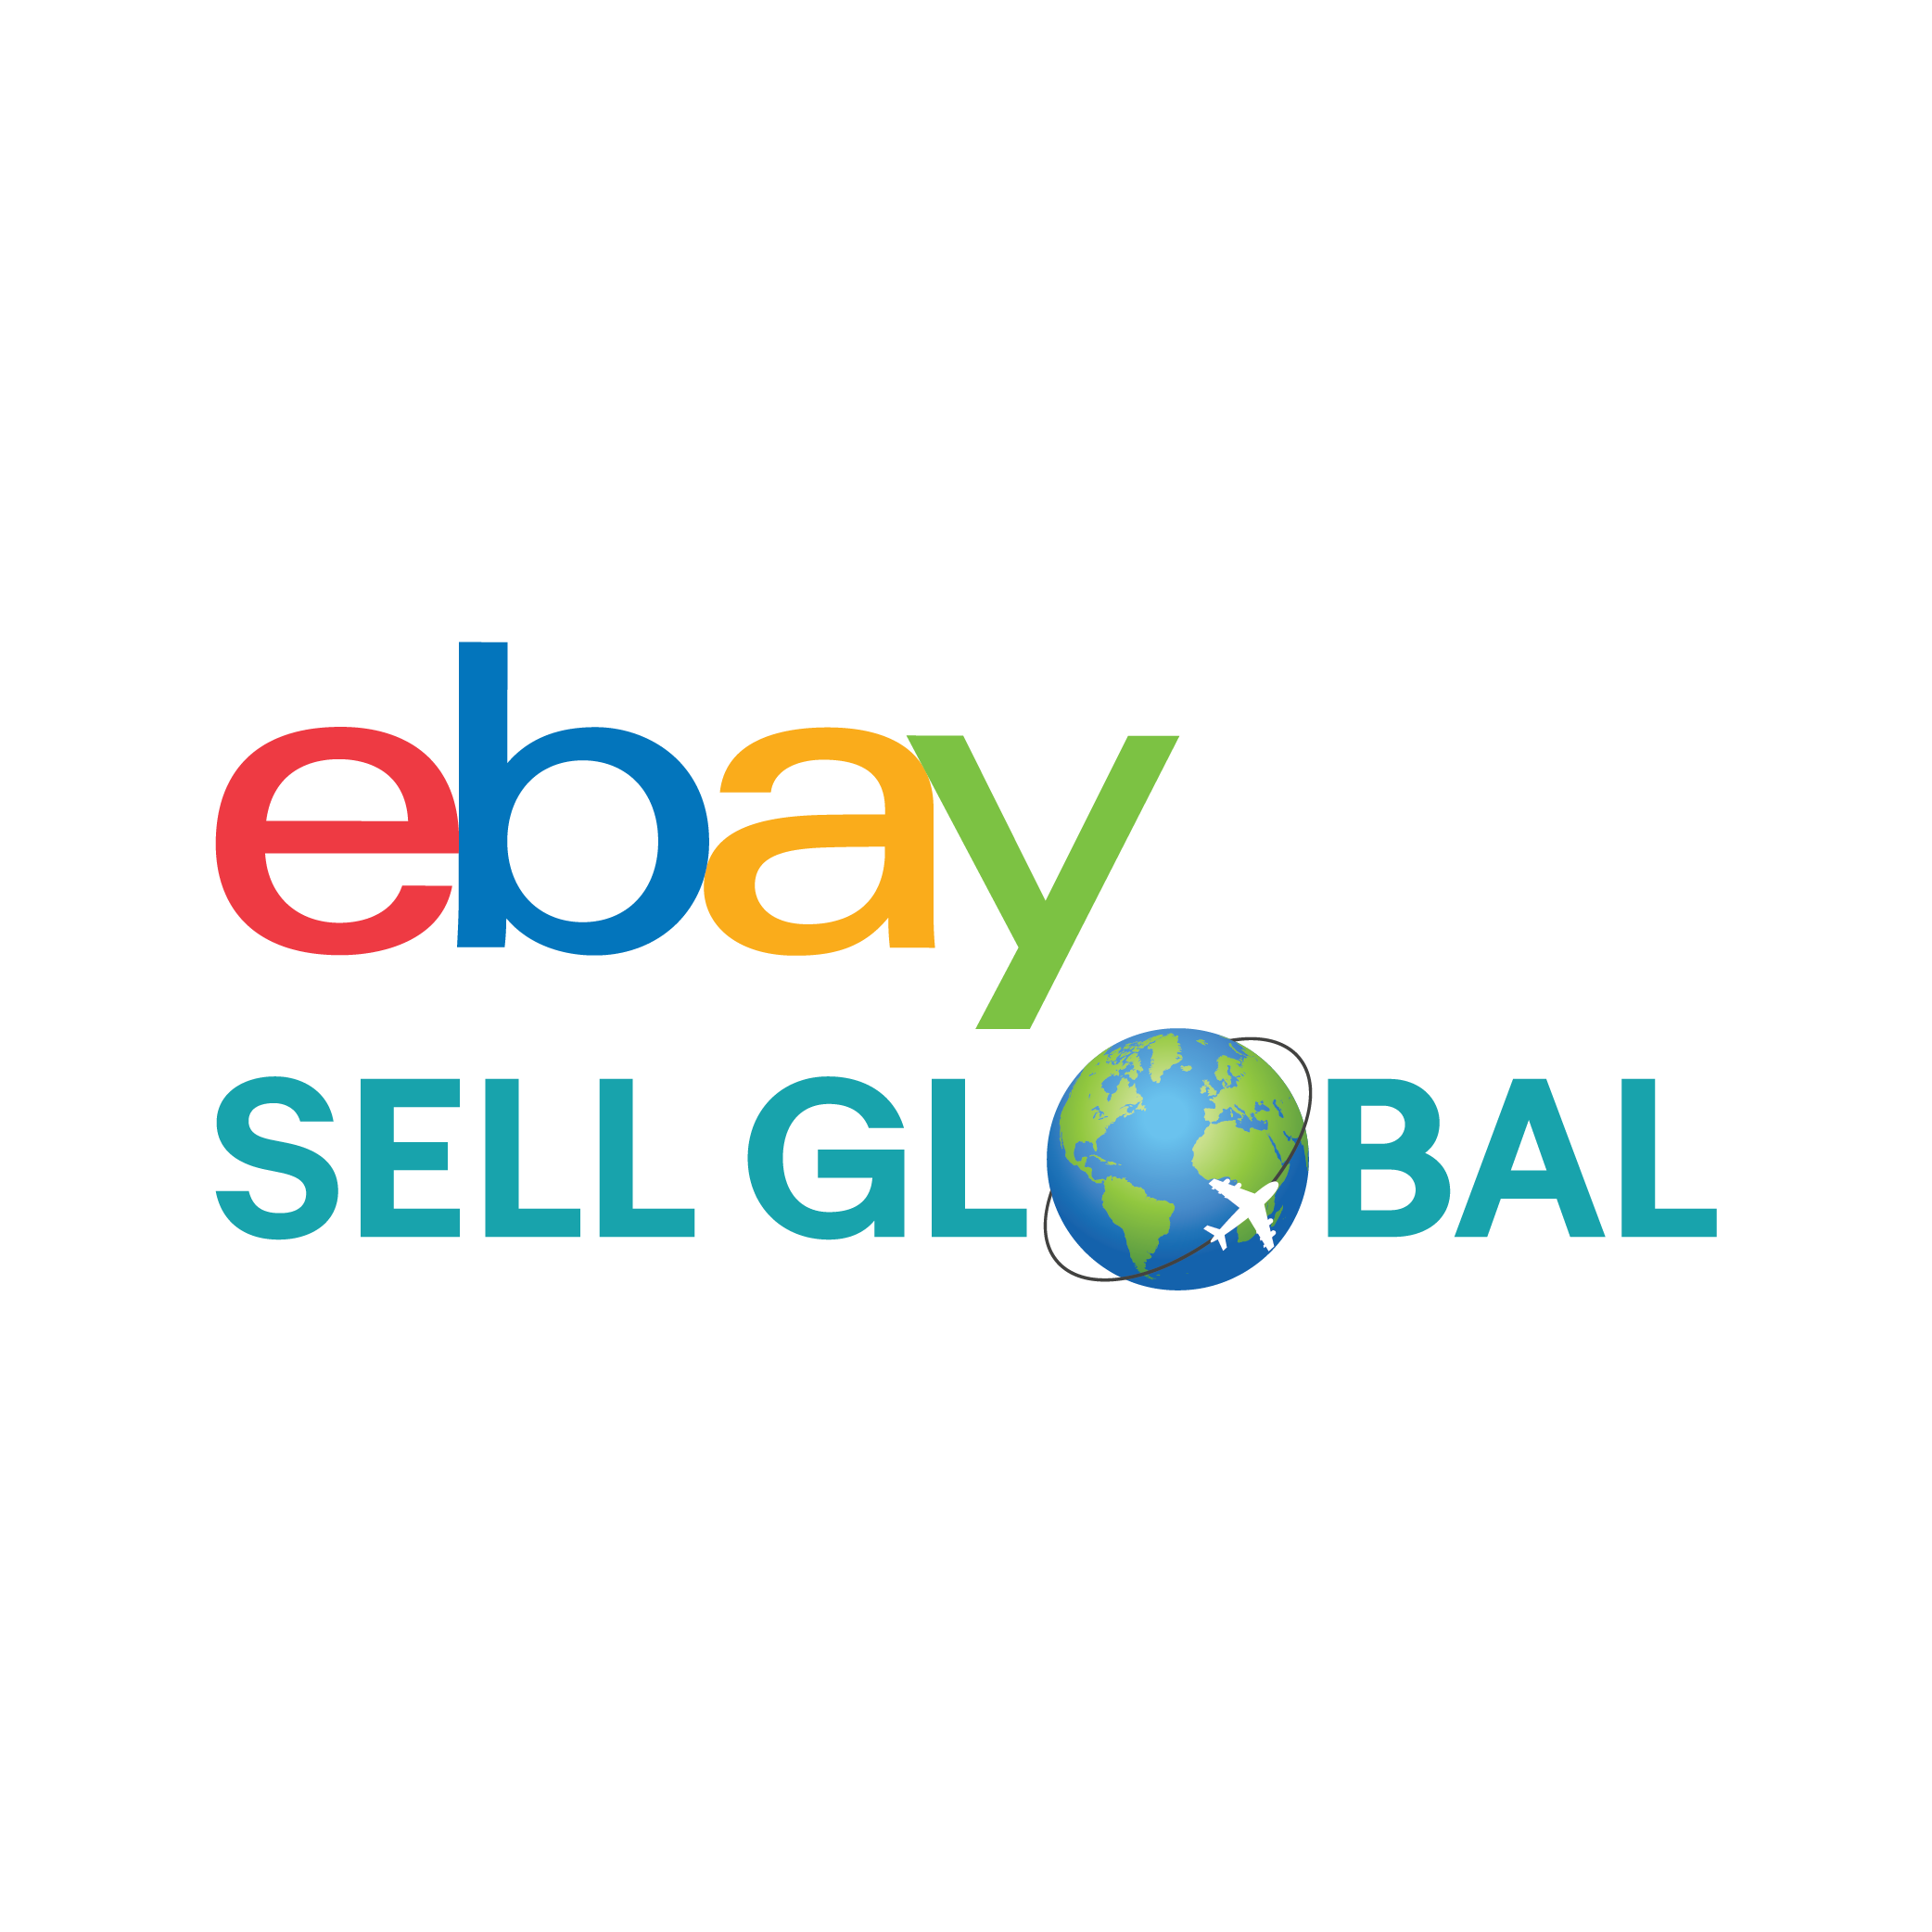 Ebay Joins Hands With International Gemological Institute News Happenings Updates Food Education Puneinsight Com